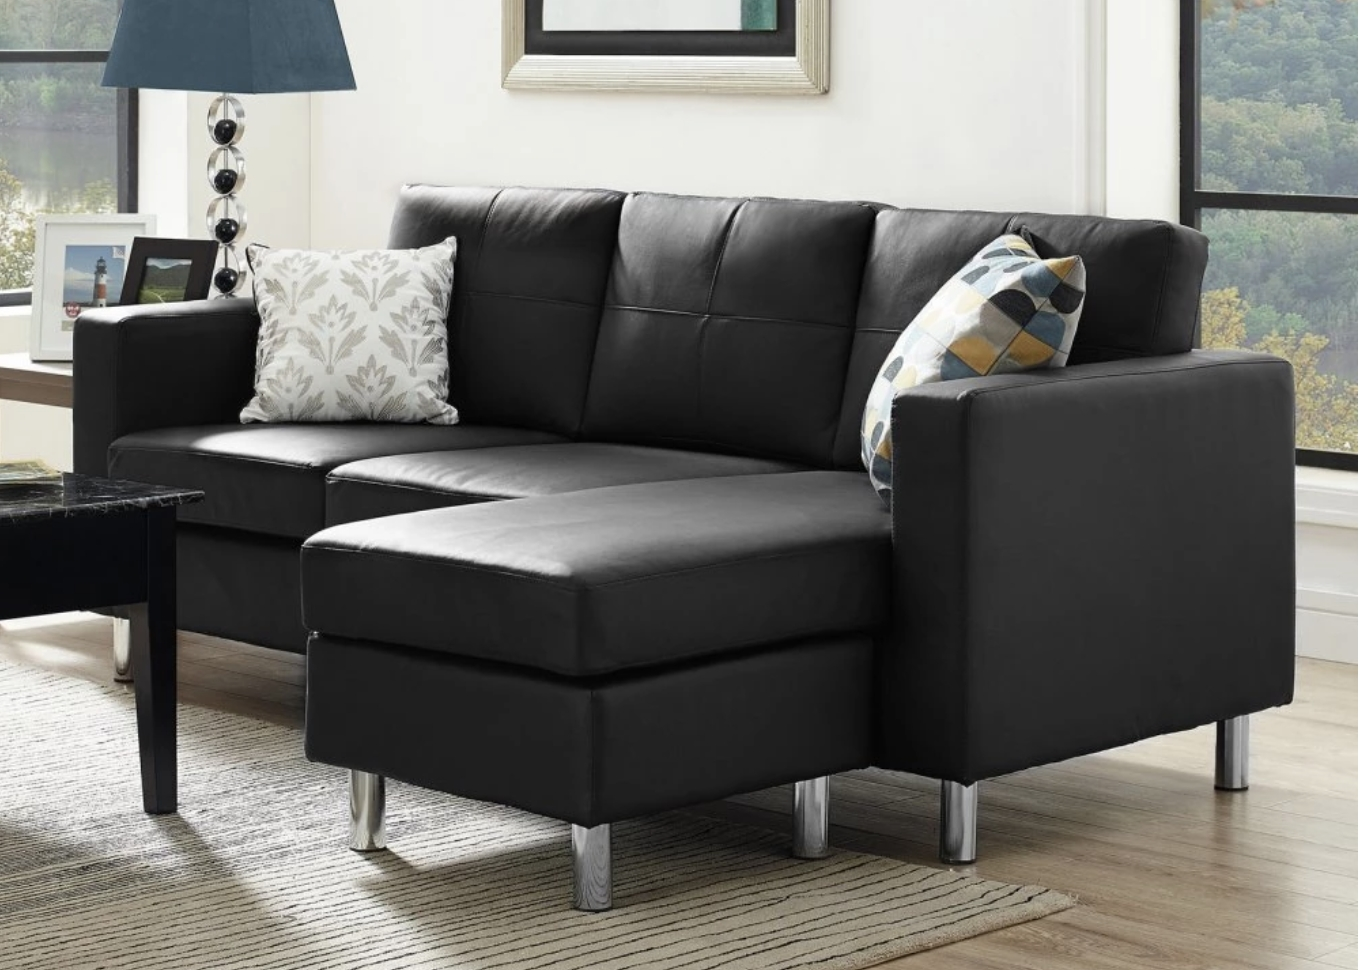 Small Sectional Sofas For Small Spaces For 2018 75 Modern Sectional Sofas For Small Spaces (2018) (View 2 of 20)